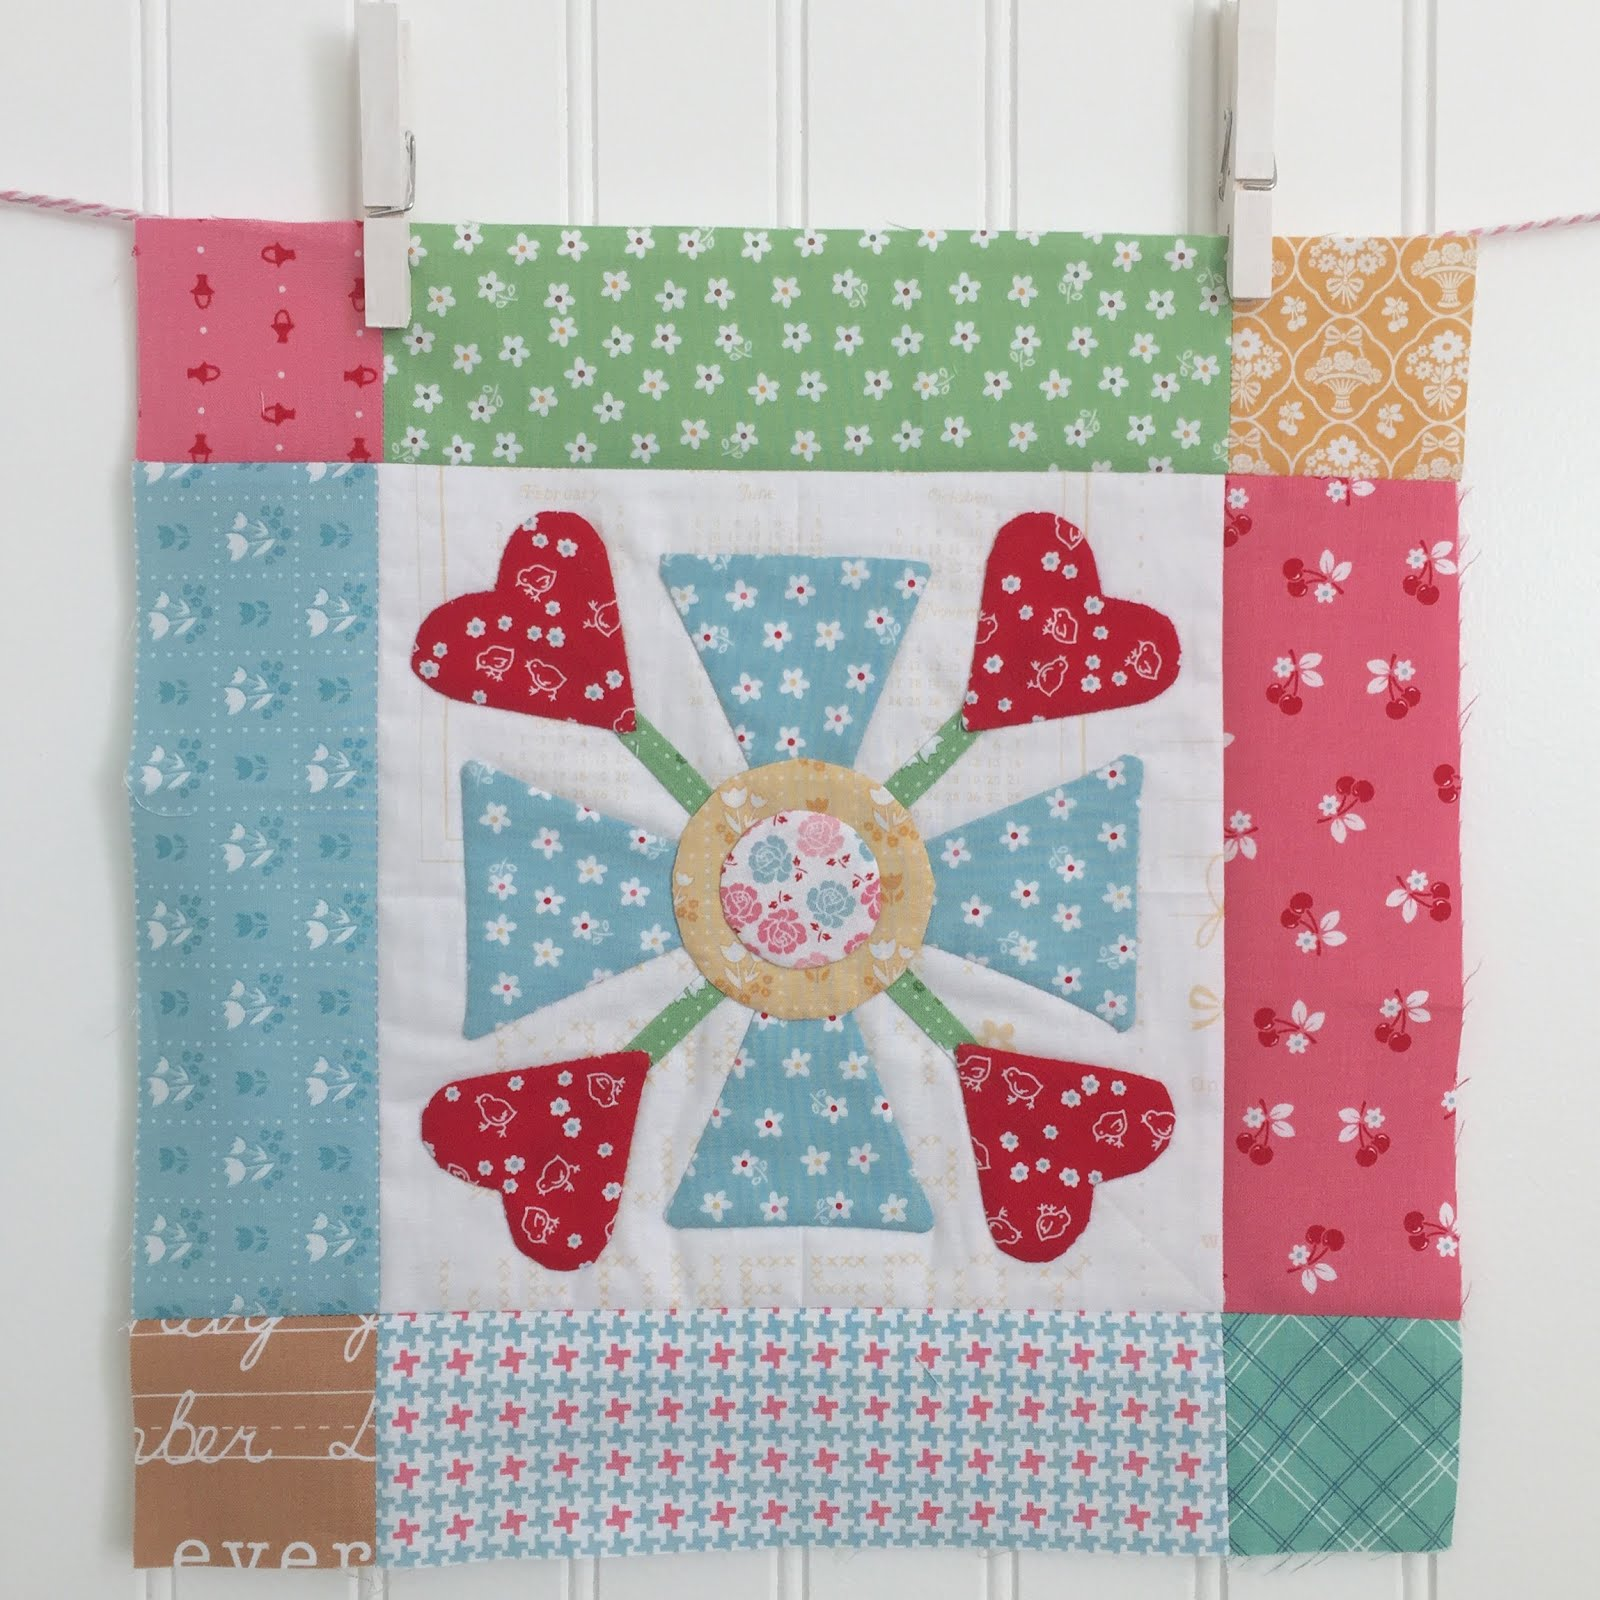 BLOOM Sew Along! 9